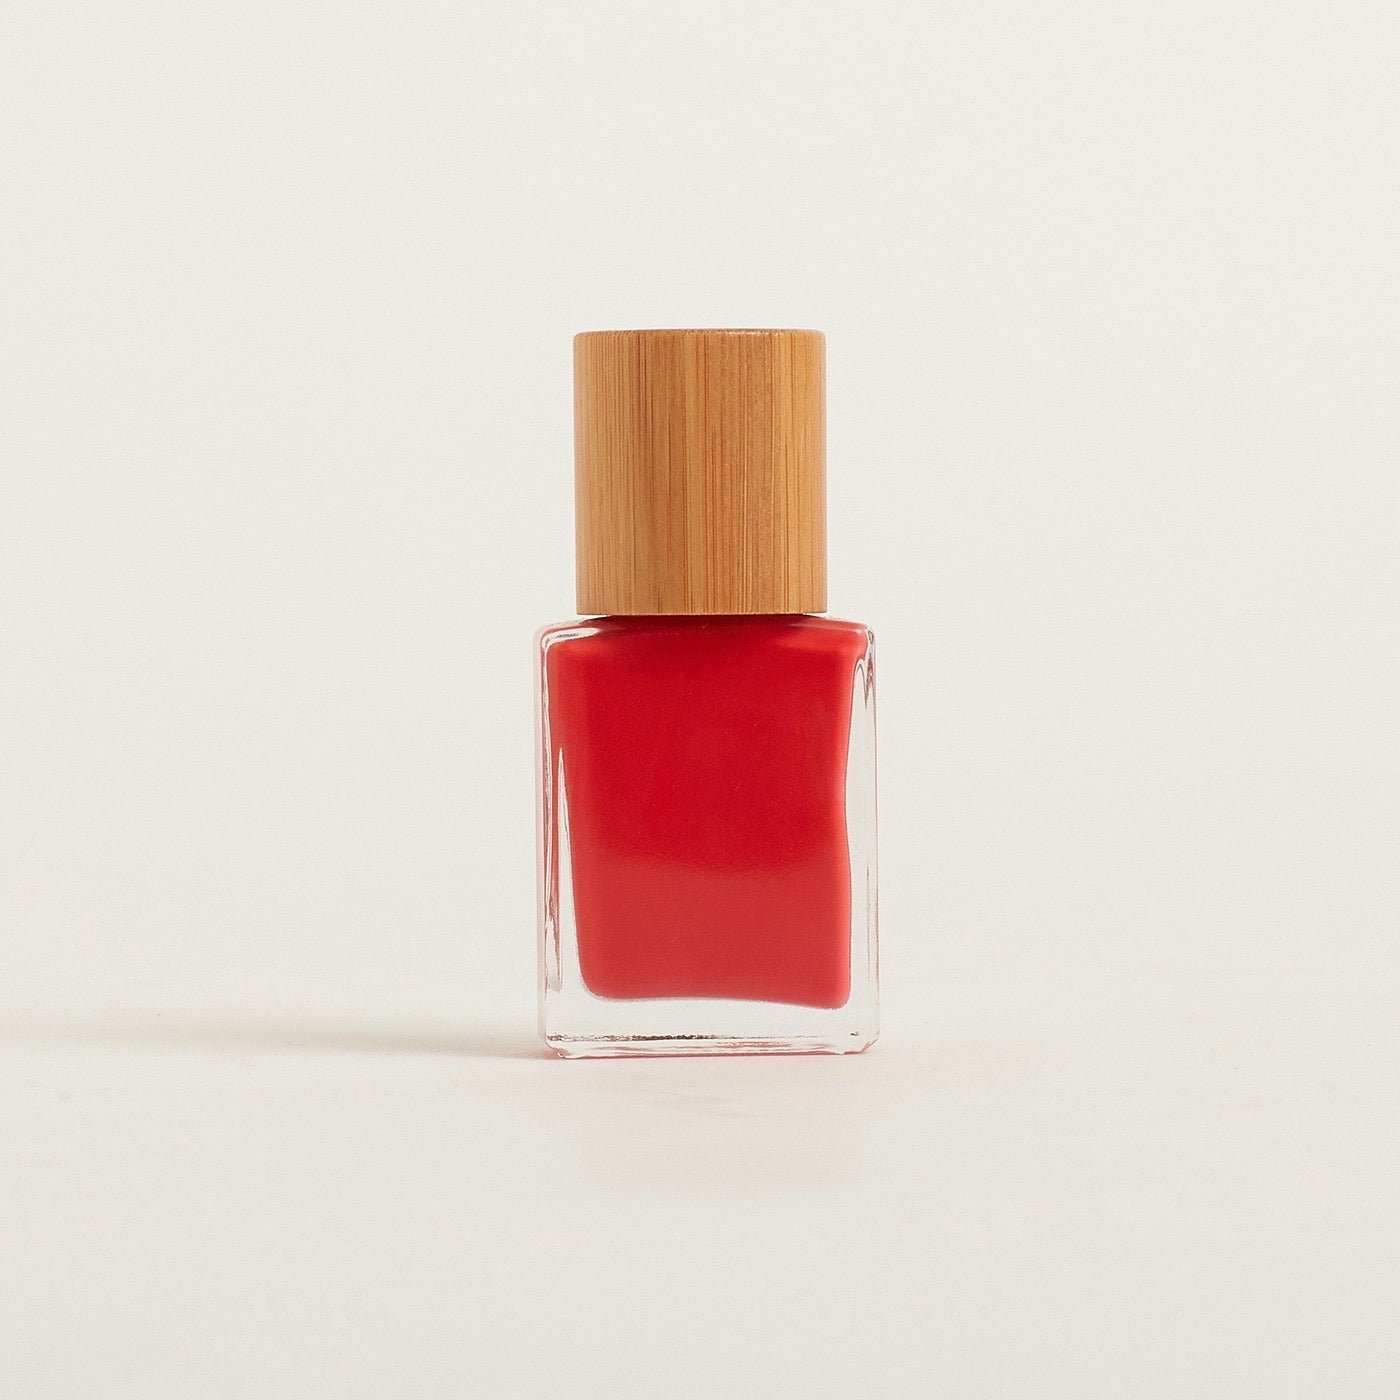 Licia Florio Nail Polish in Chilli